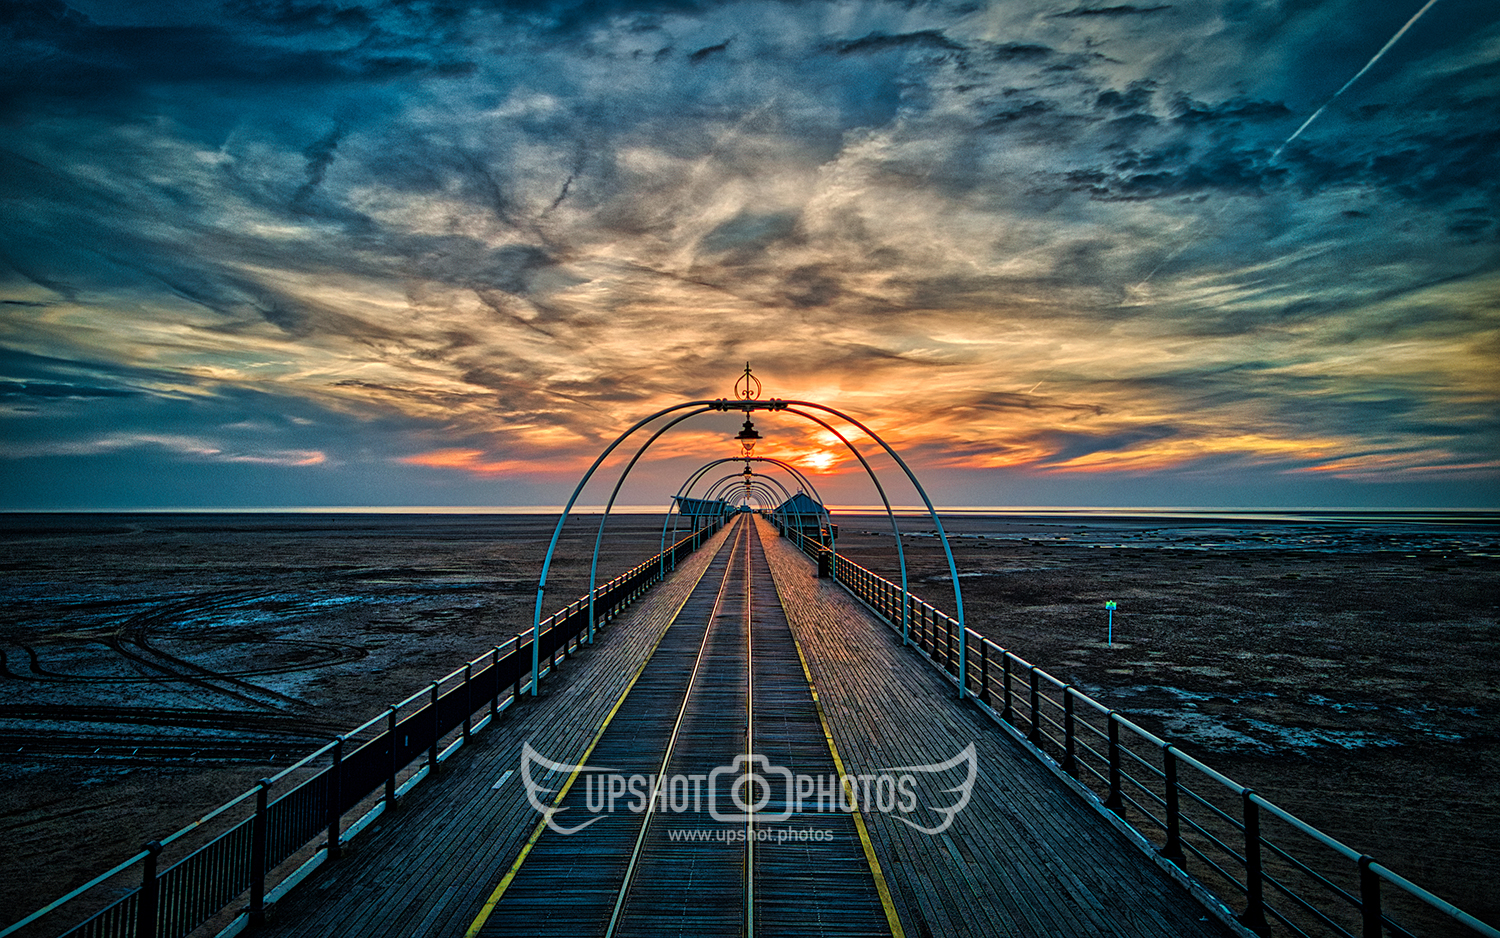 Drone photography at Southport pier at sunset by Upshot Photos